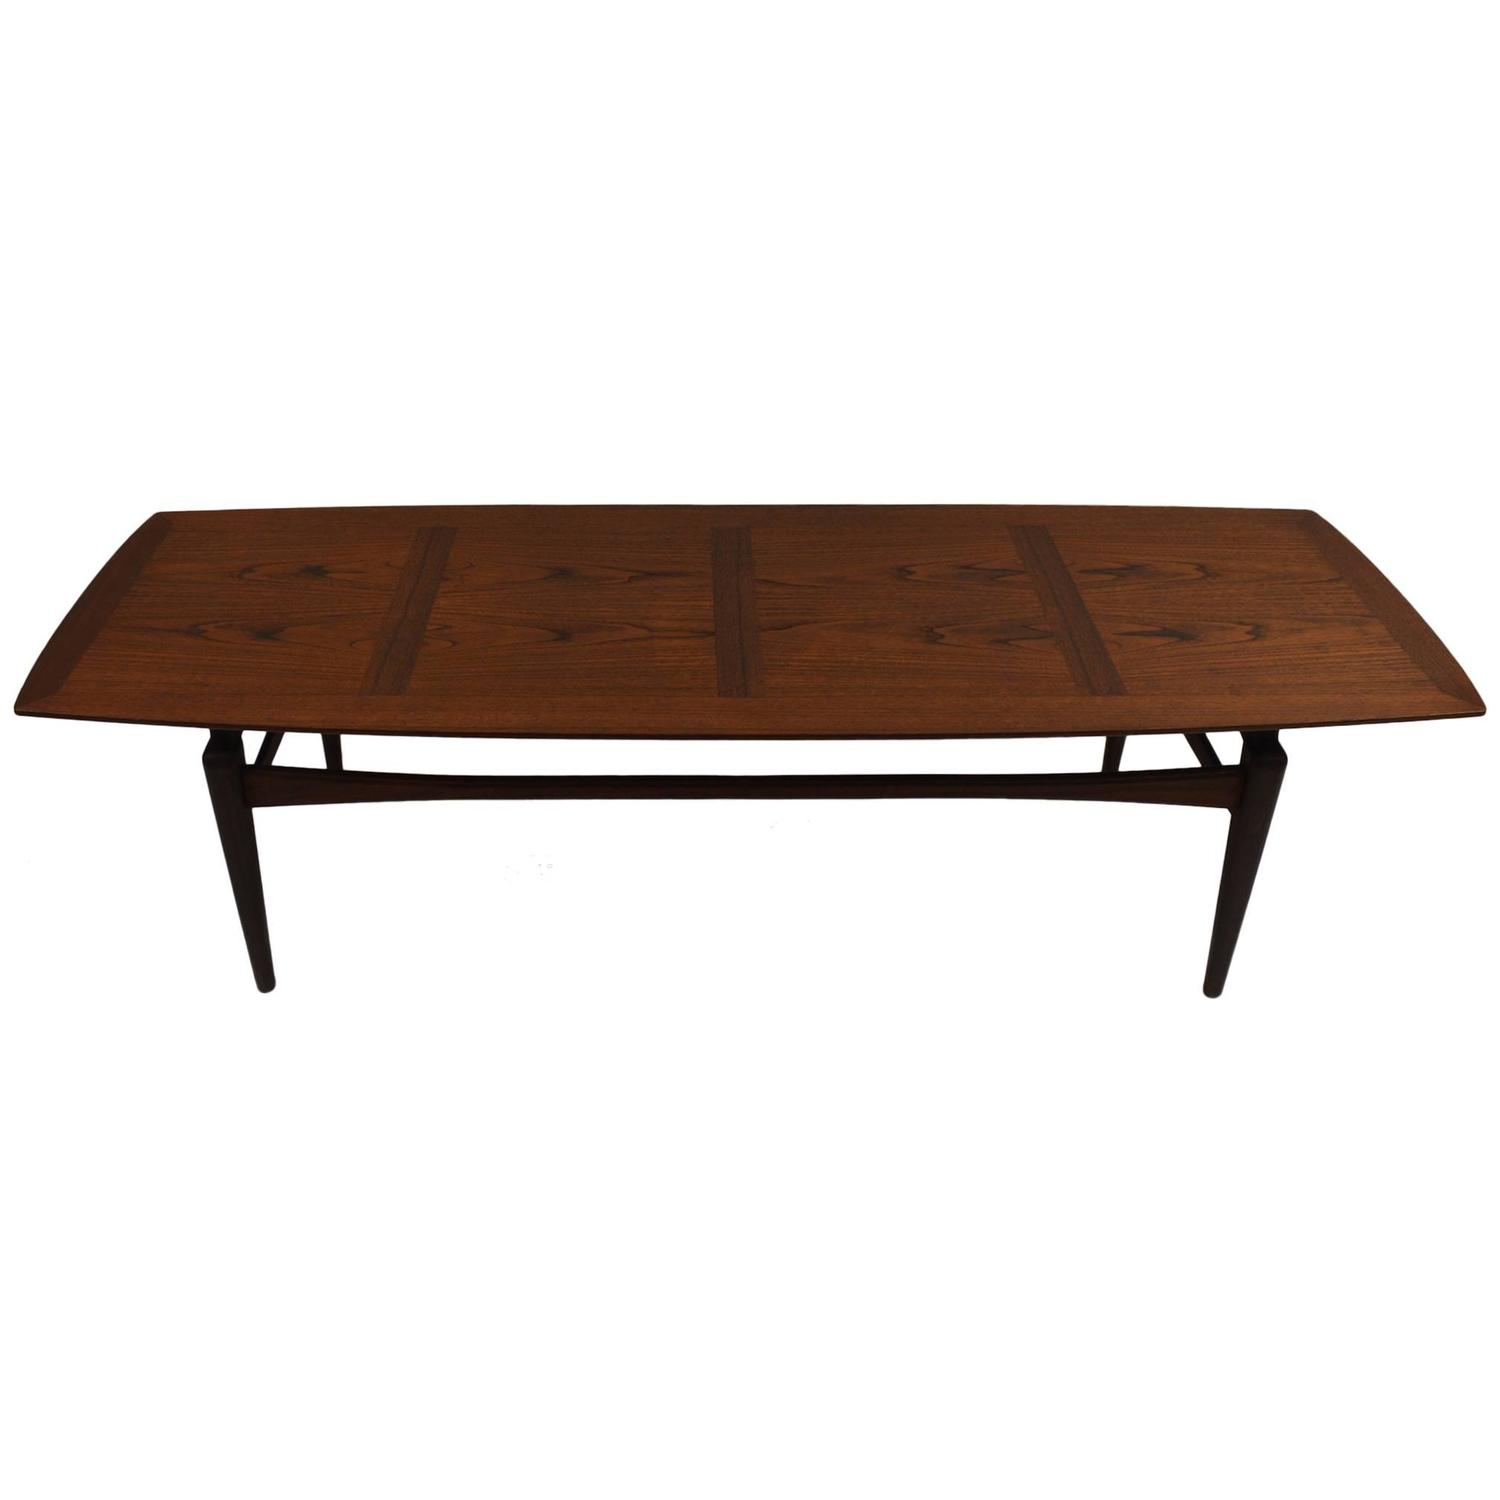 Danish Modern Surfboard Coffee Table At 1stdibs